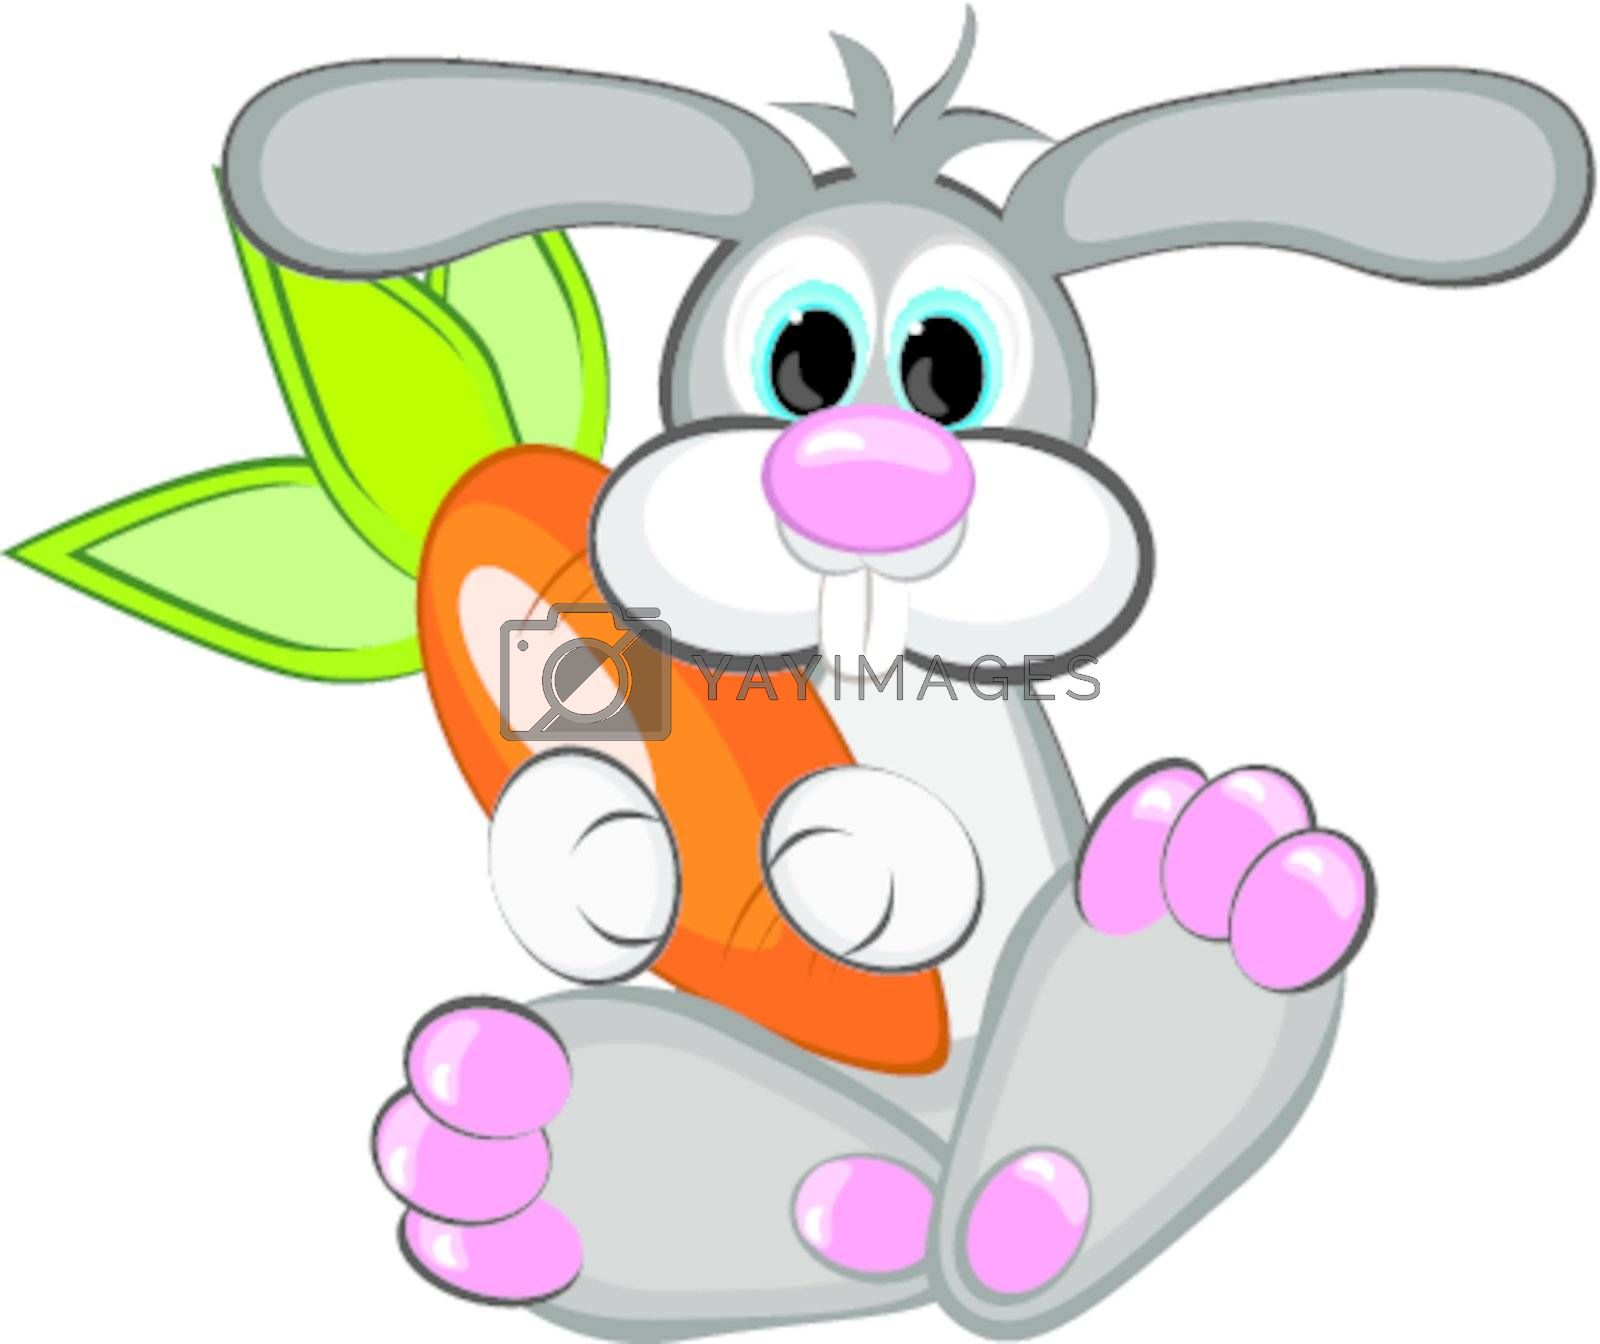 Year of the Rabbit - A happy rabbit with a giant carrot.